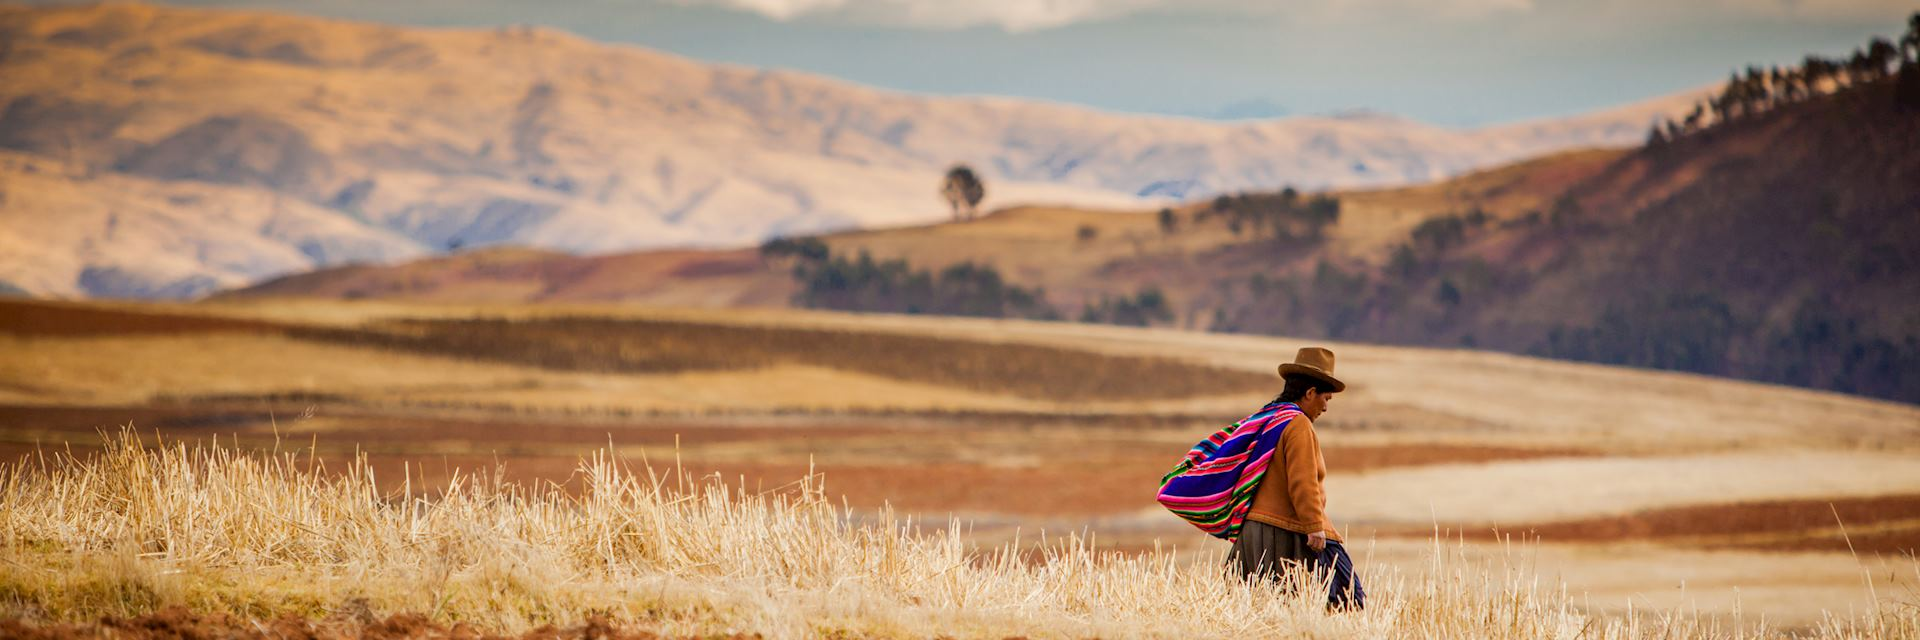 Local wearing traditional clothing in Peru